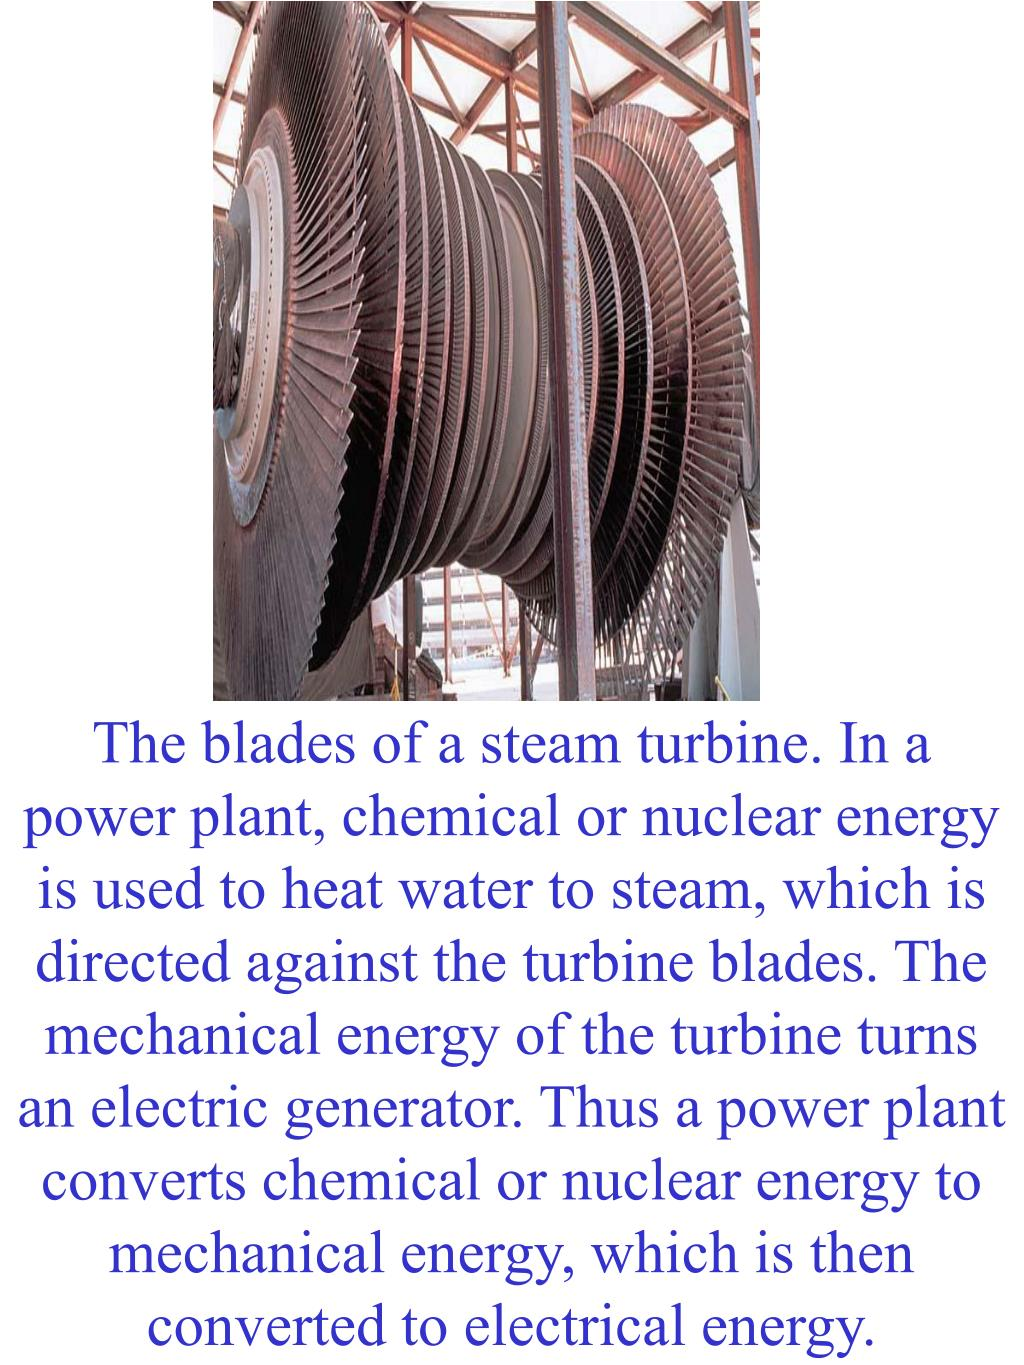 The blades of a steam turbine. In a power plant, chemical or nuclear energy is used to heat water to steam, which is directed against the turbine blades. The mechanical energy of the turbine turns an electric generator. Thus a power plant converts chemical or nuclear energy to mechanical energy, which is then converted to electrical energy.